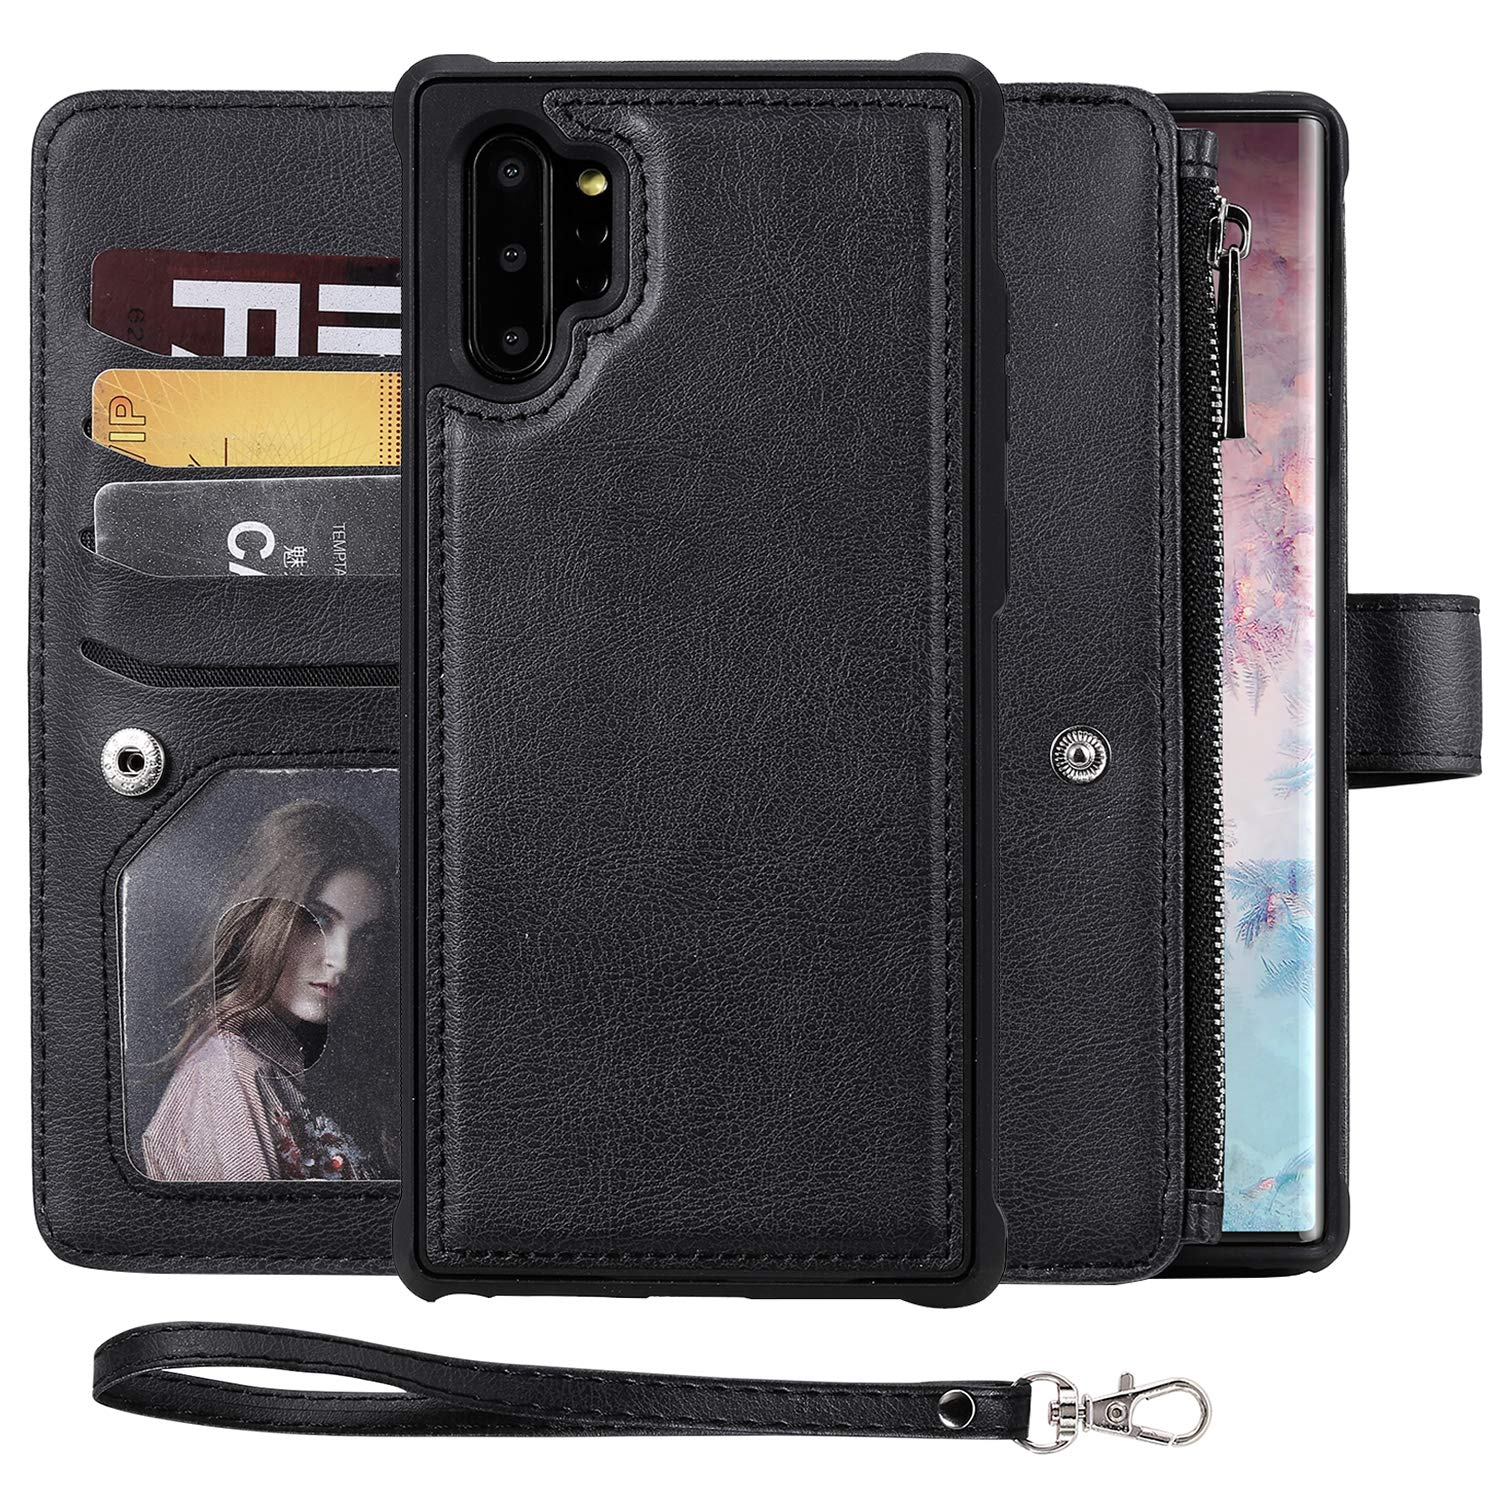 Galaxy Note 10 Wallet Case,SAVYOU 2 in 1 Folio Flip Durable Magnetic Detachable Cover fit Car Mount [8 Card Holder] [Wrist Strap] PU Leather Wallet Case for Samsung Galaxy Note 10 6.3 inch by SAVYOU